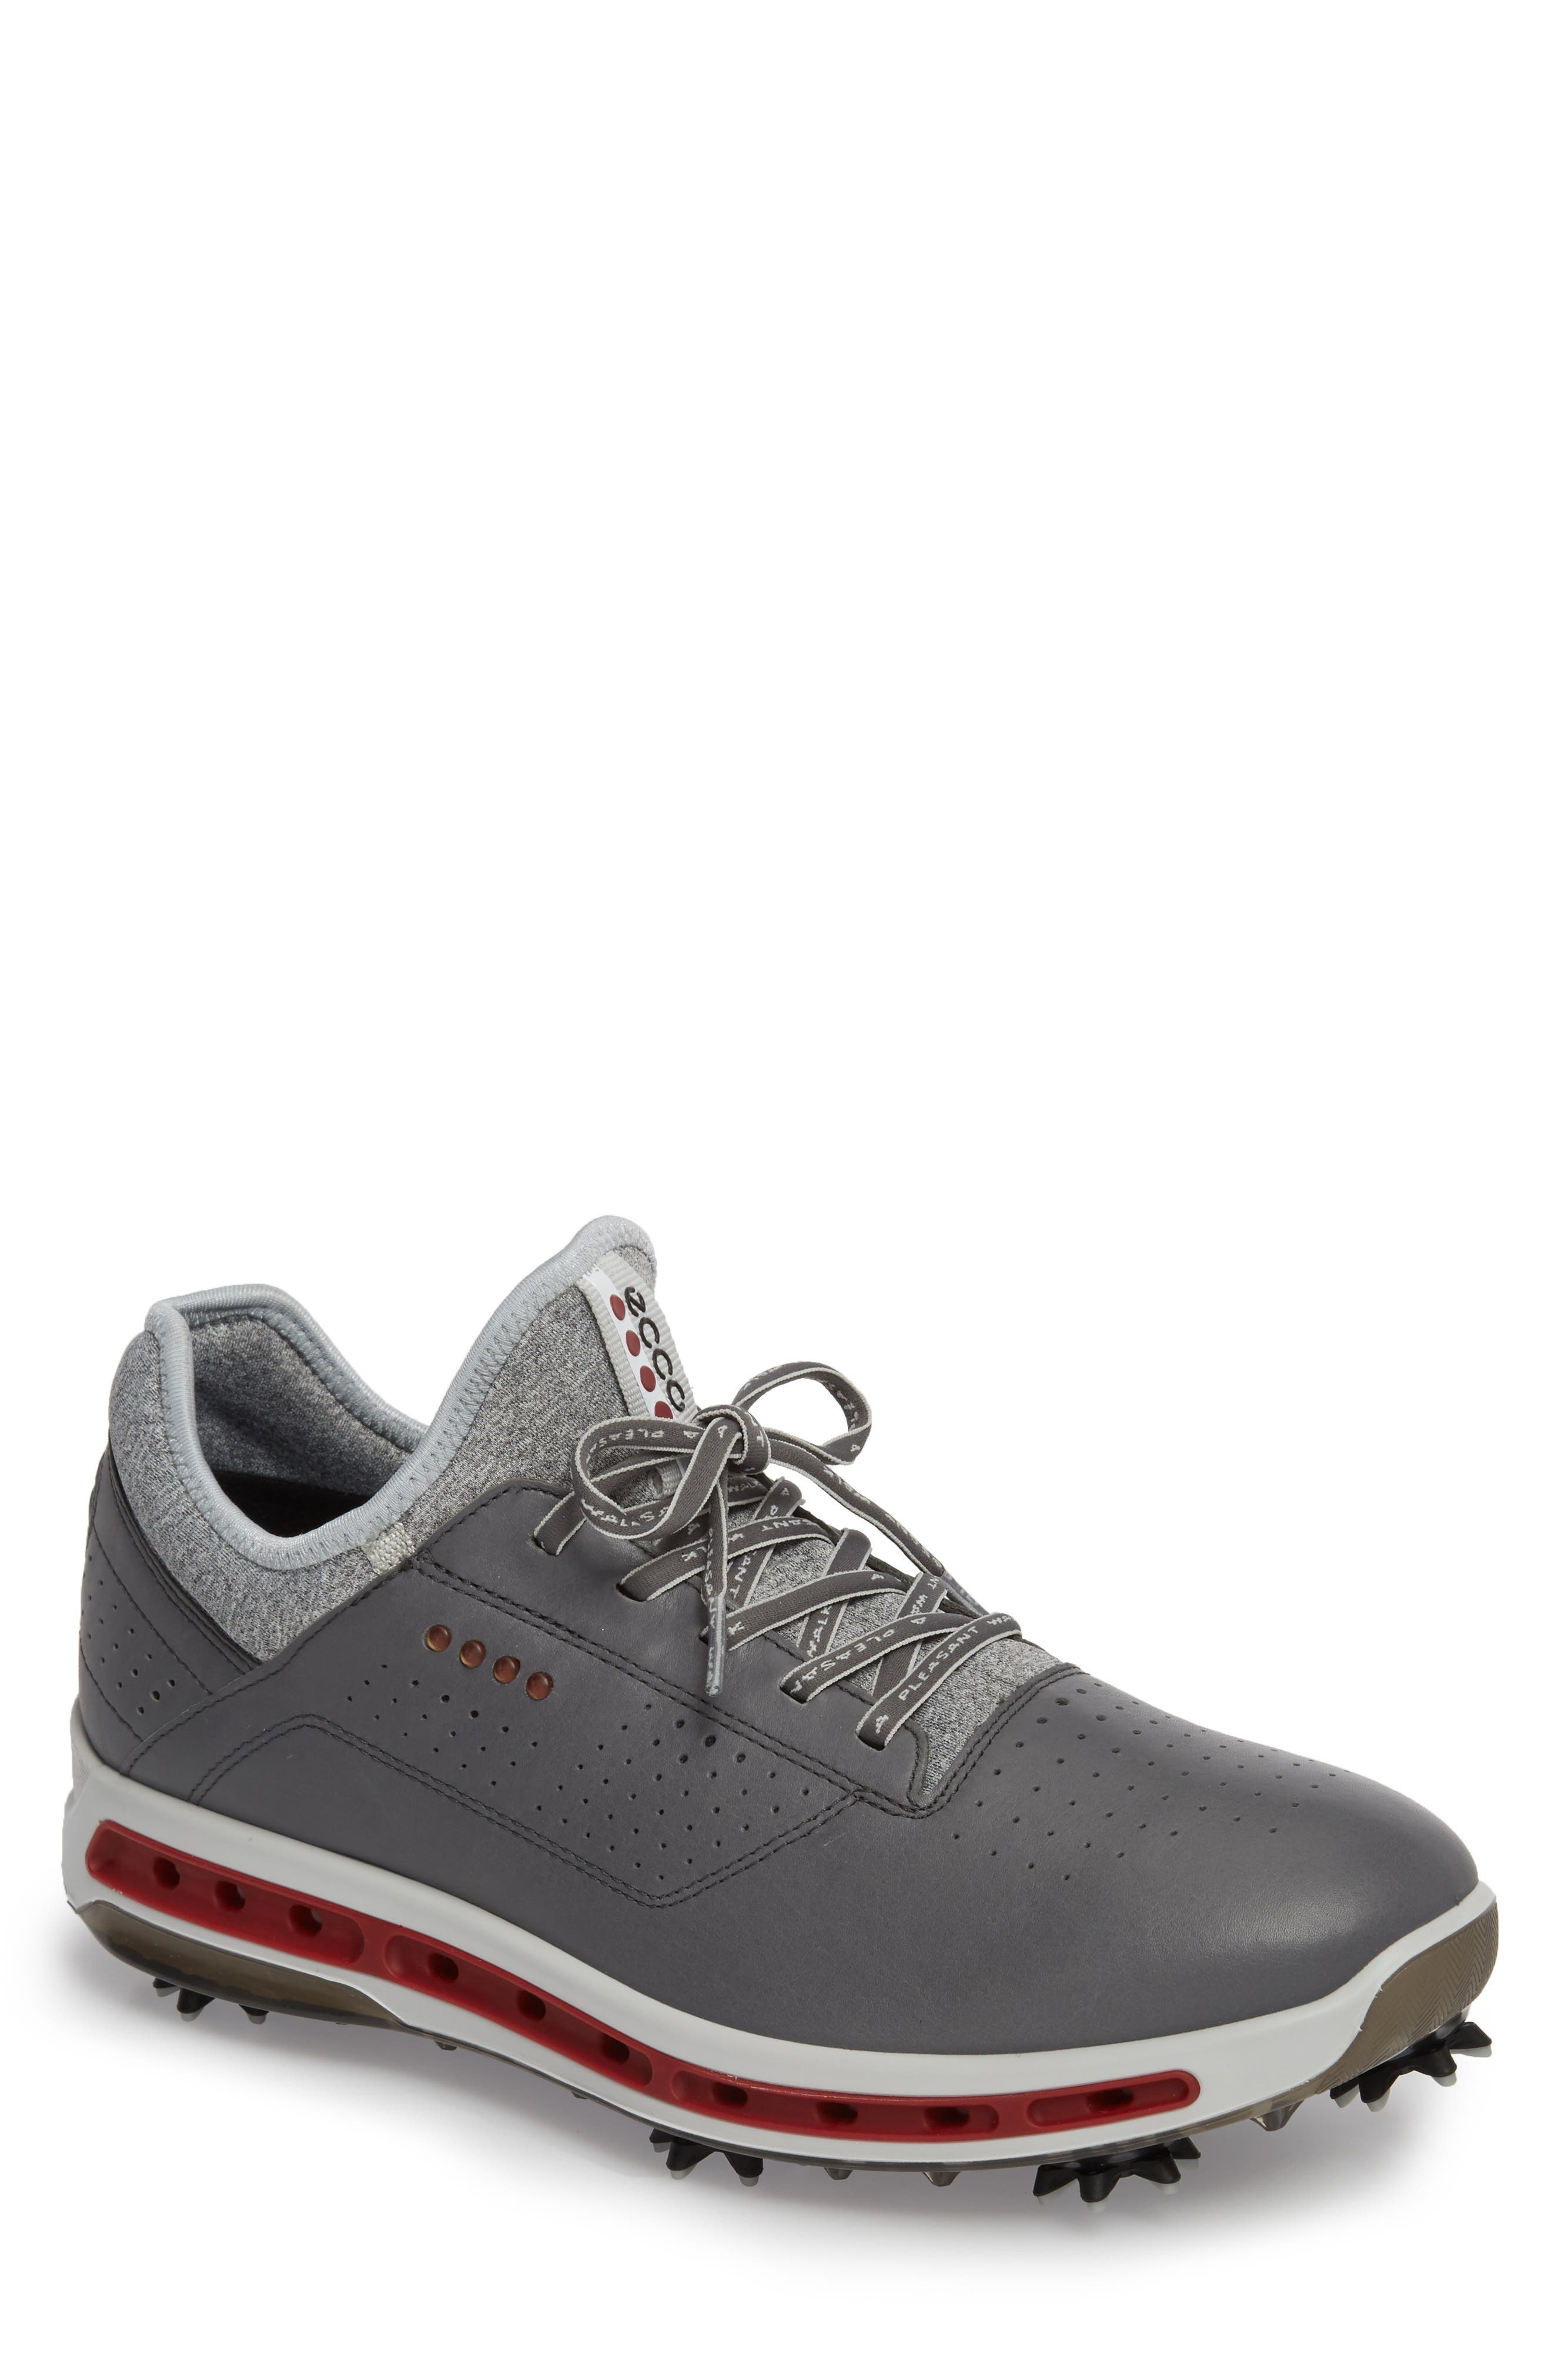 Cool 18 Gore-Tex Golf Shoe,                         Main,                         color, Dark Shadow Leather